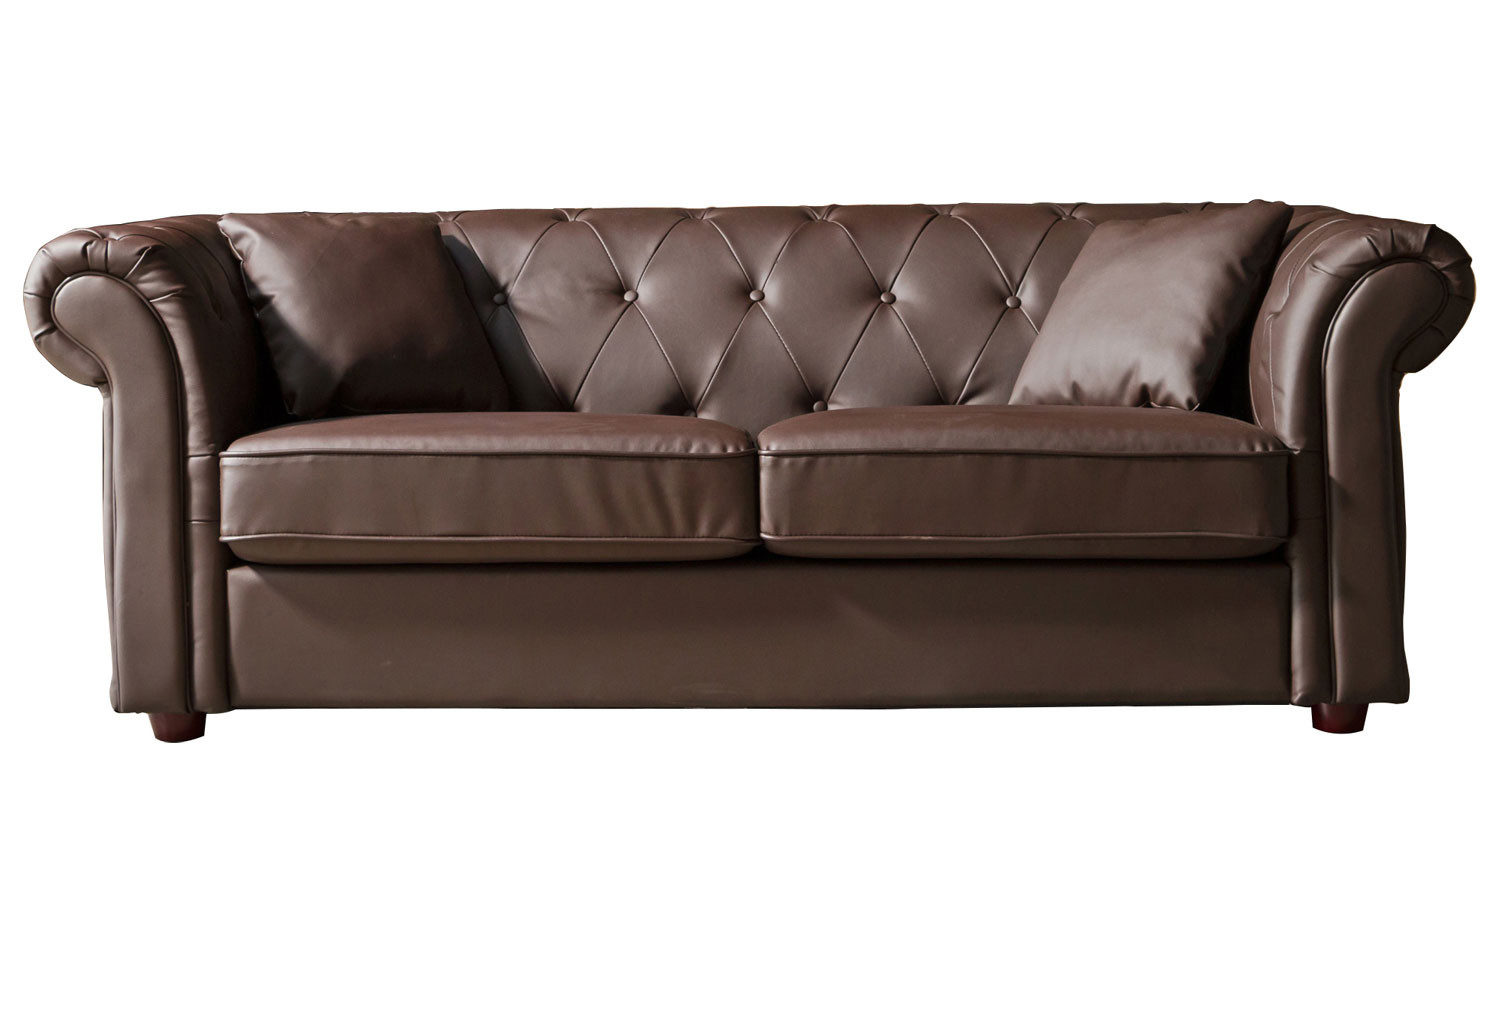 Chesterfield Leather 3 Seater Sofa